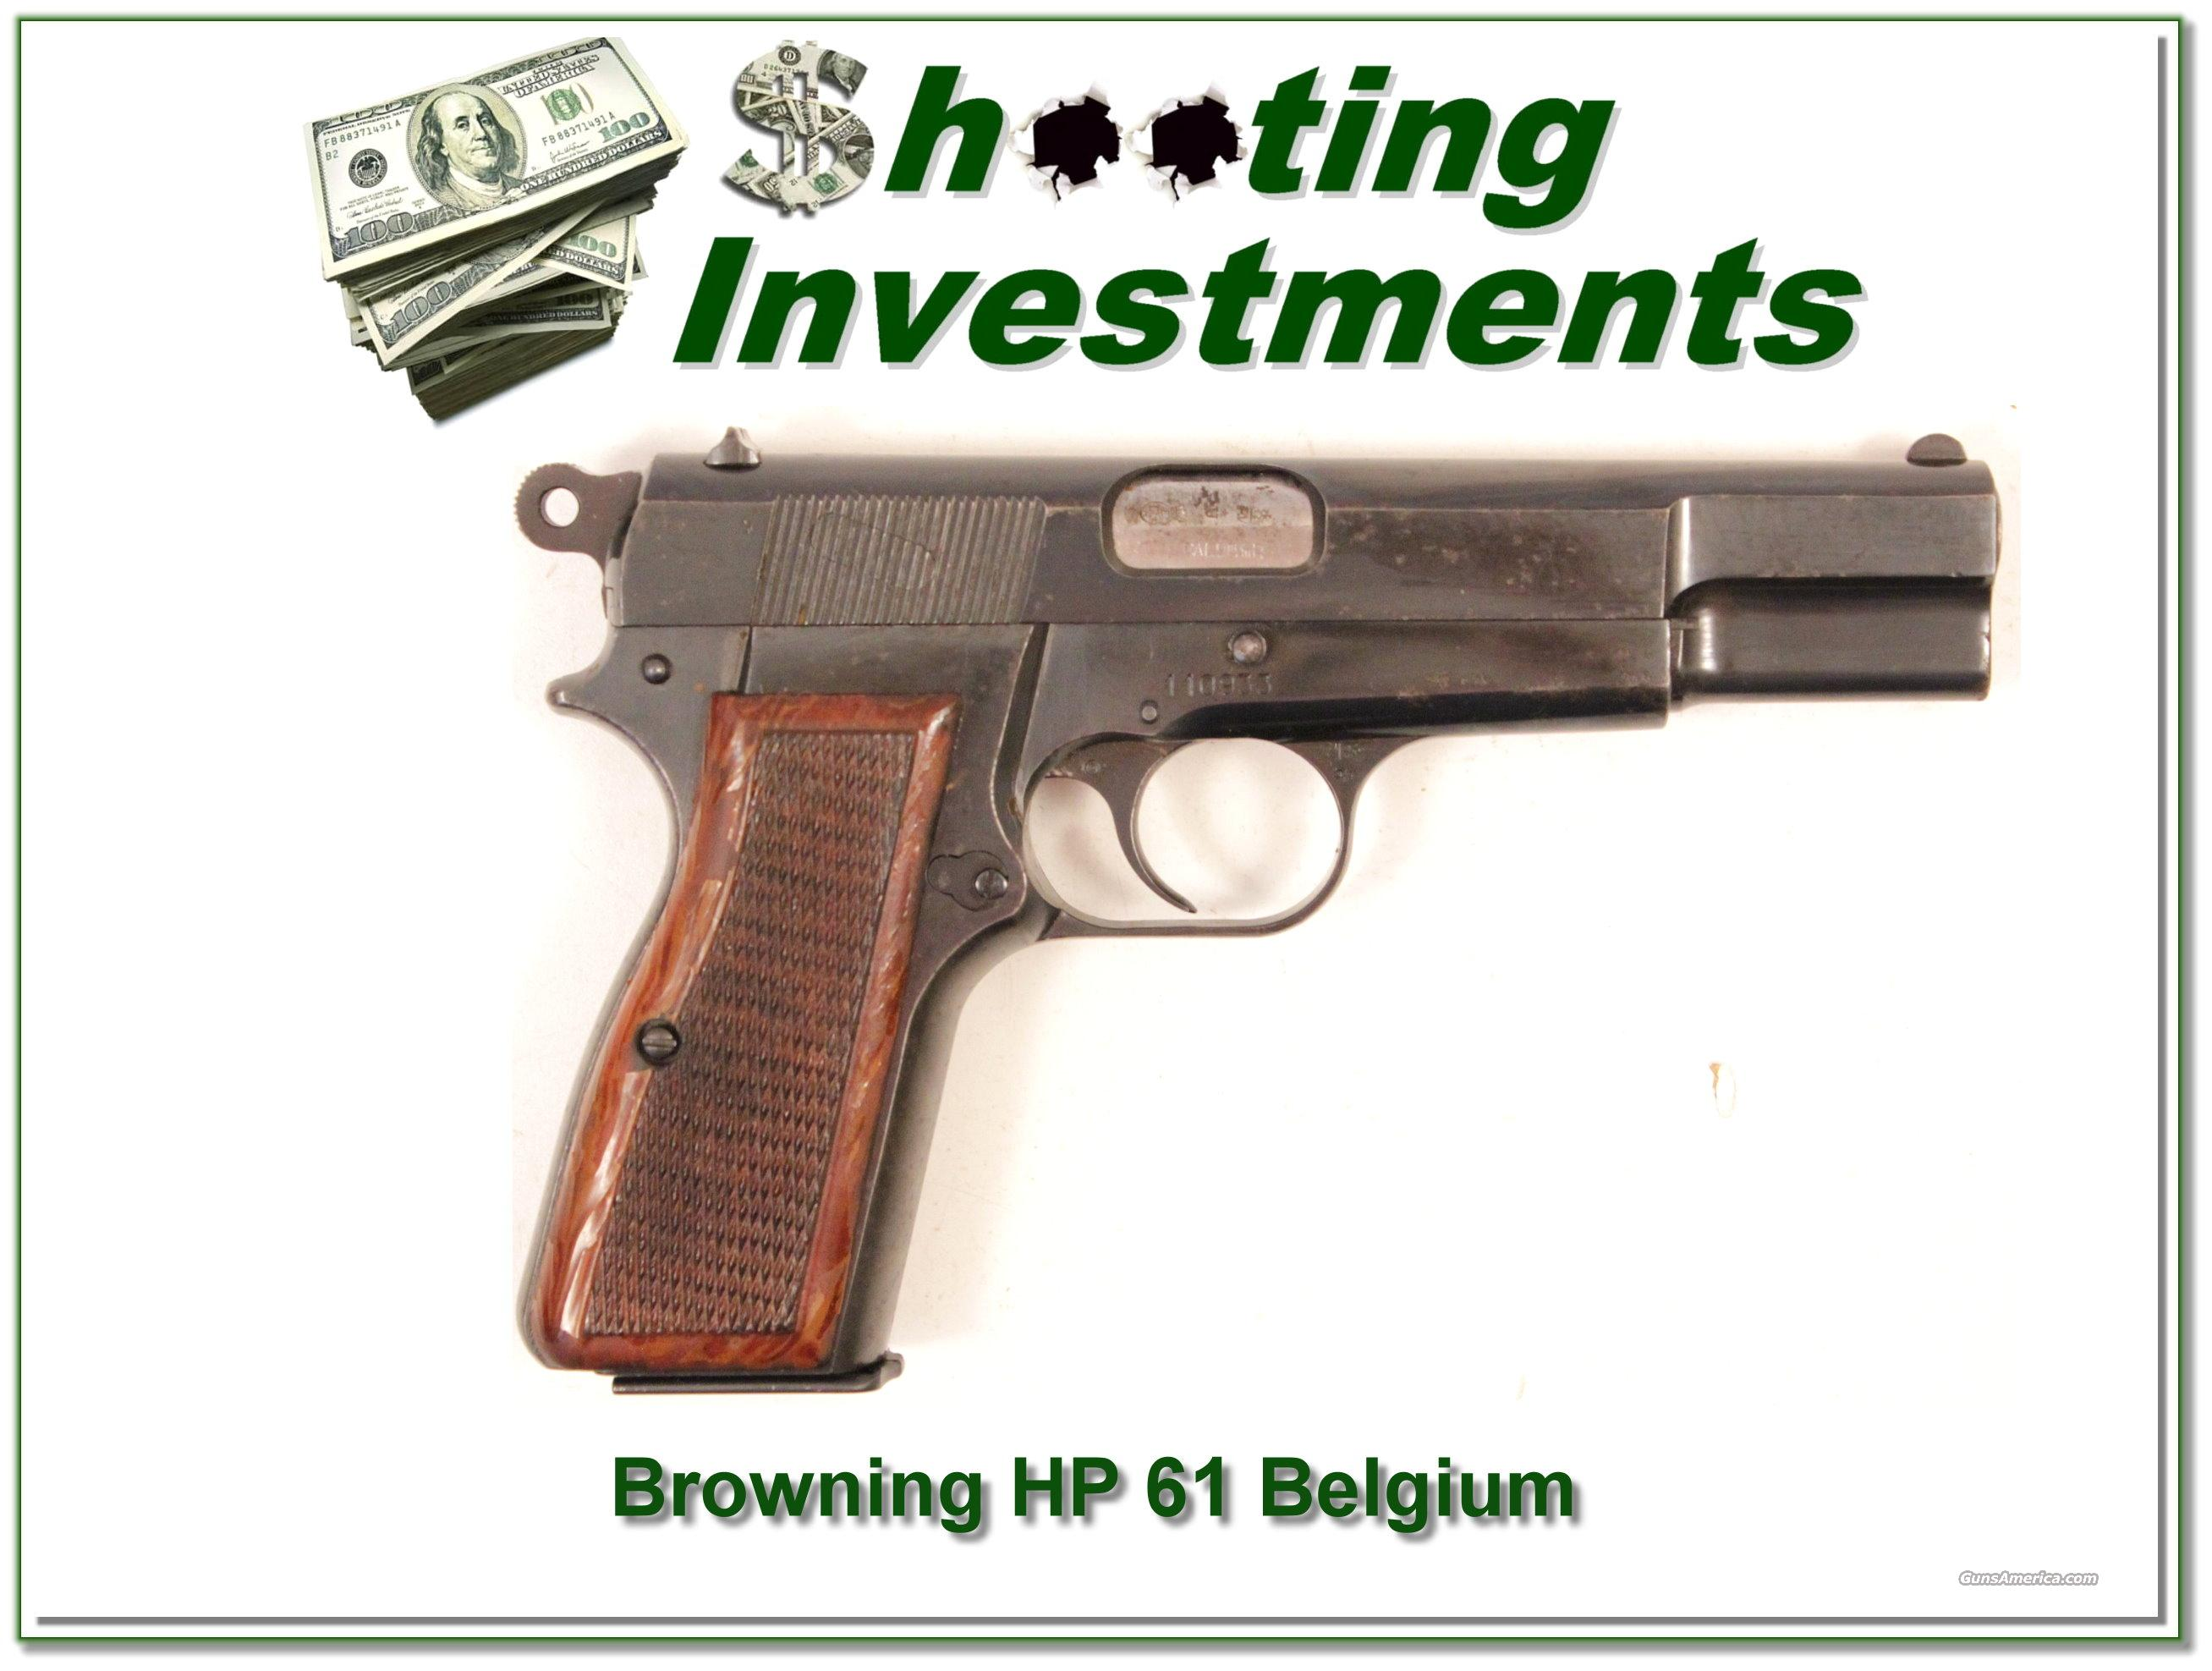 Browning High Power 61 Belgium 9mm  Guns > Pistols > Browning Pistols > Hi Power